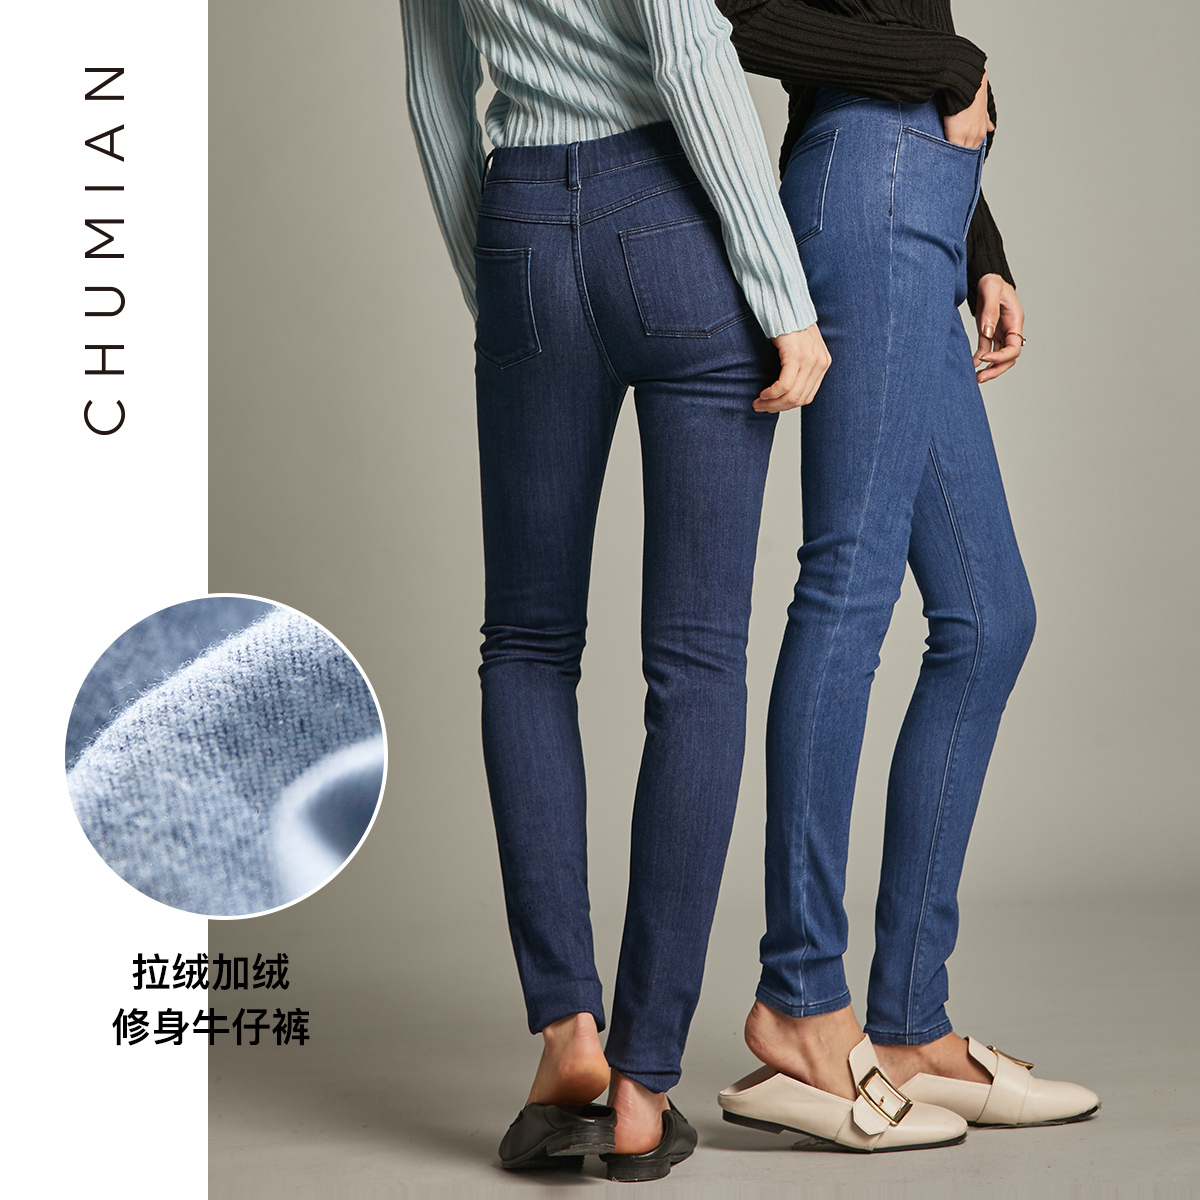 First cotton 2019 Spring dress New Classic casual jeans female autumn slimming hundred pencil pants pants K